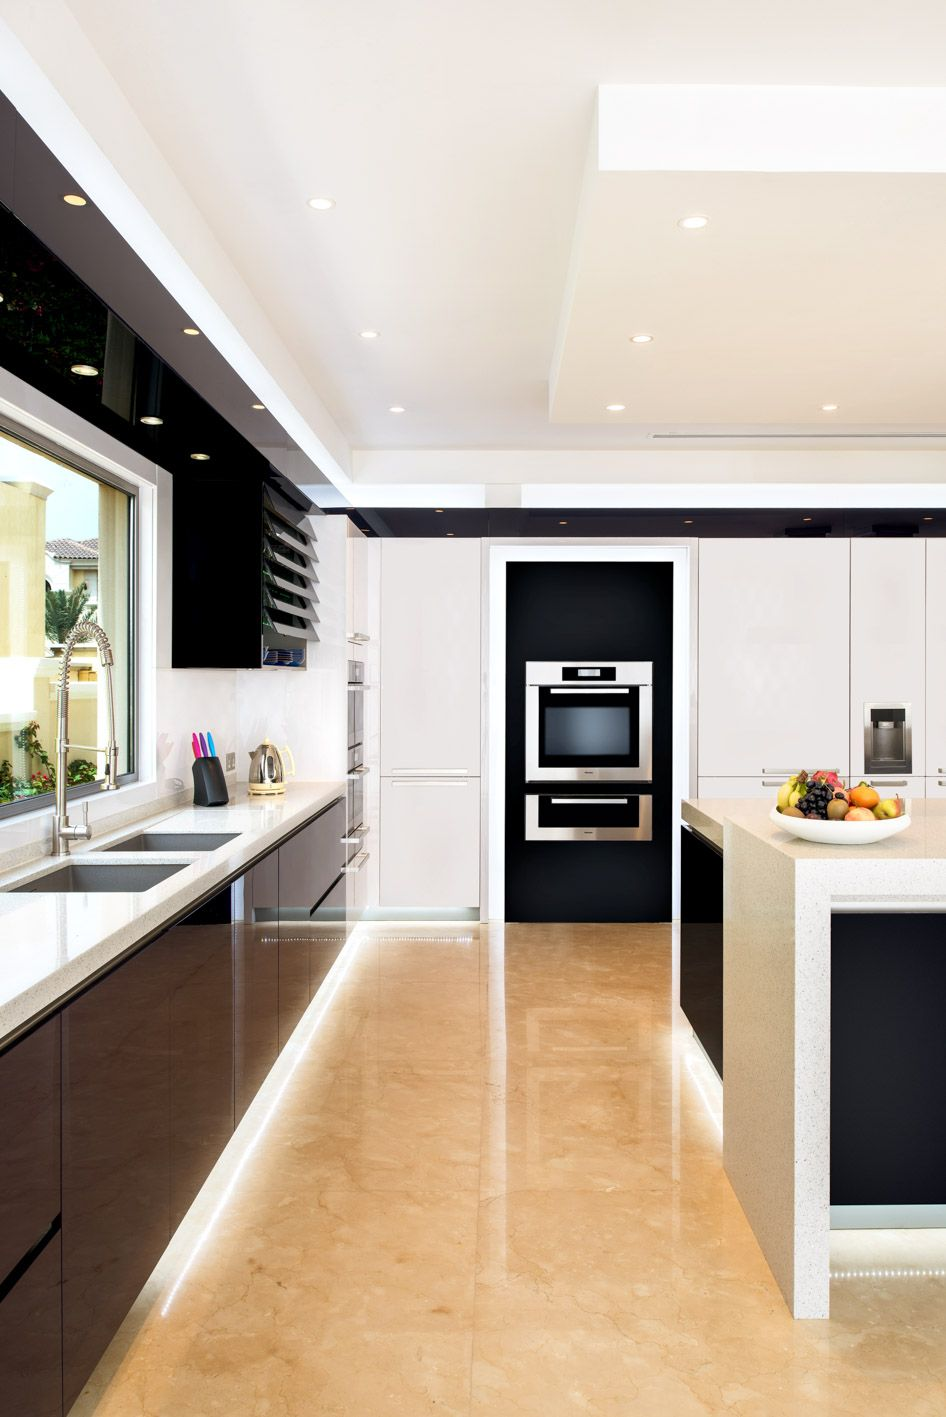 This monochromatic kitchen certainly breaks from the norm